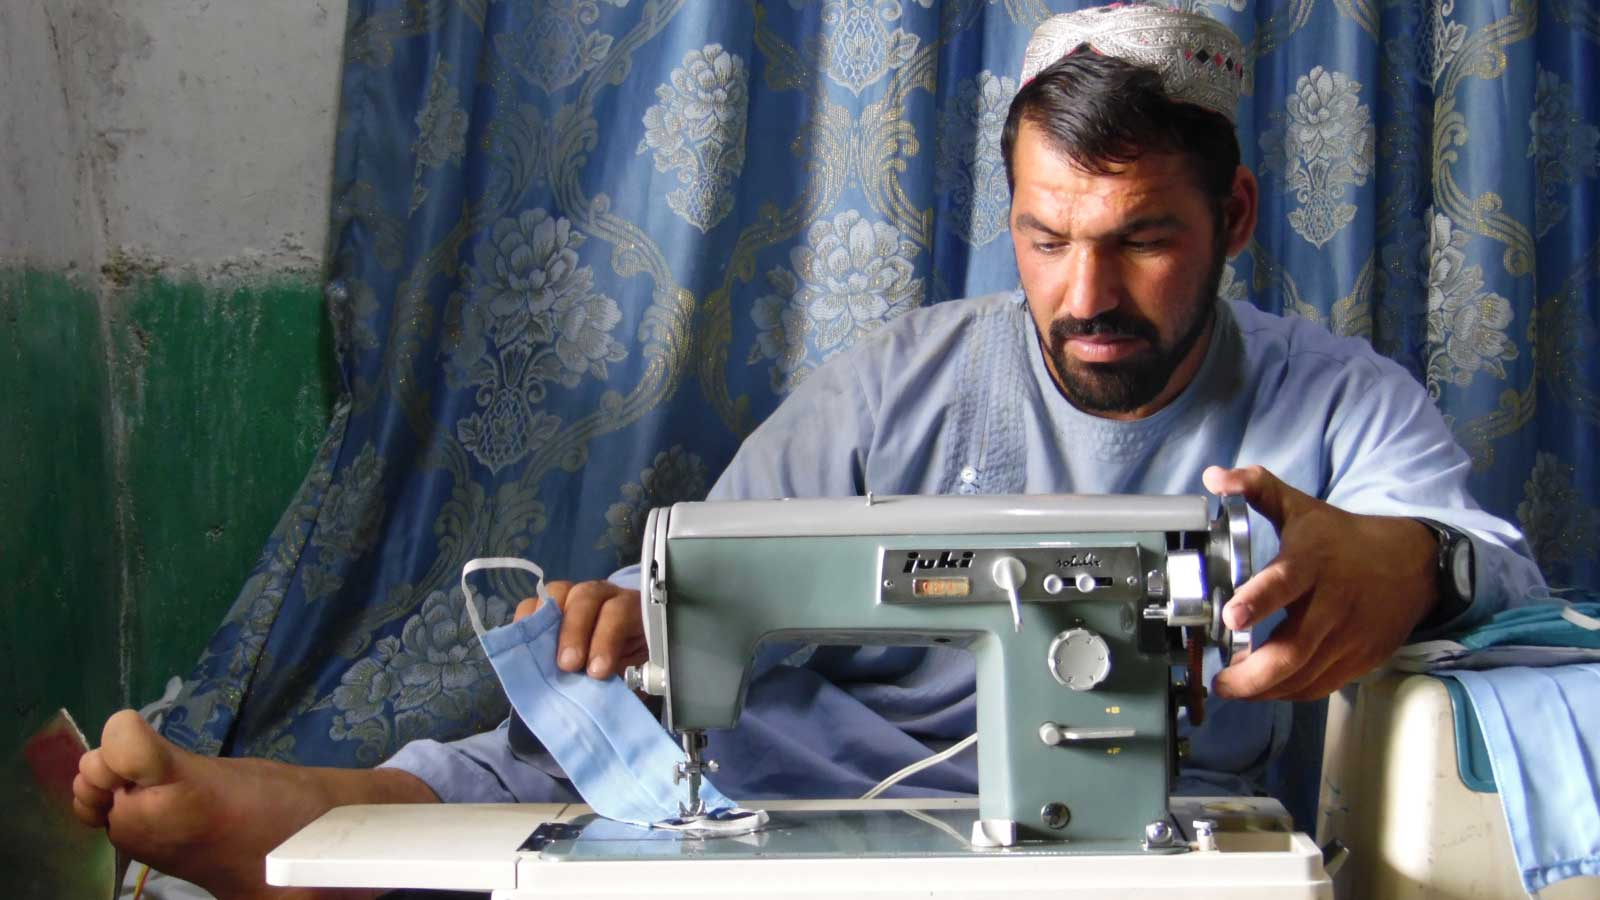 COVID-19 in Afghanistan | Father with disability makes life-saving masks